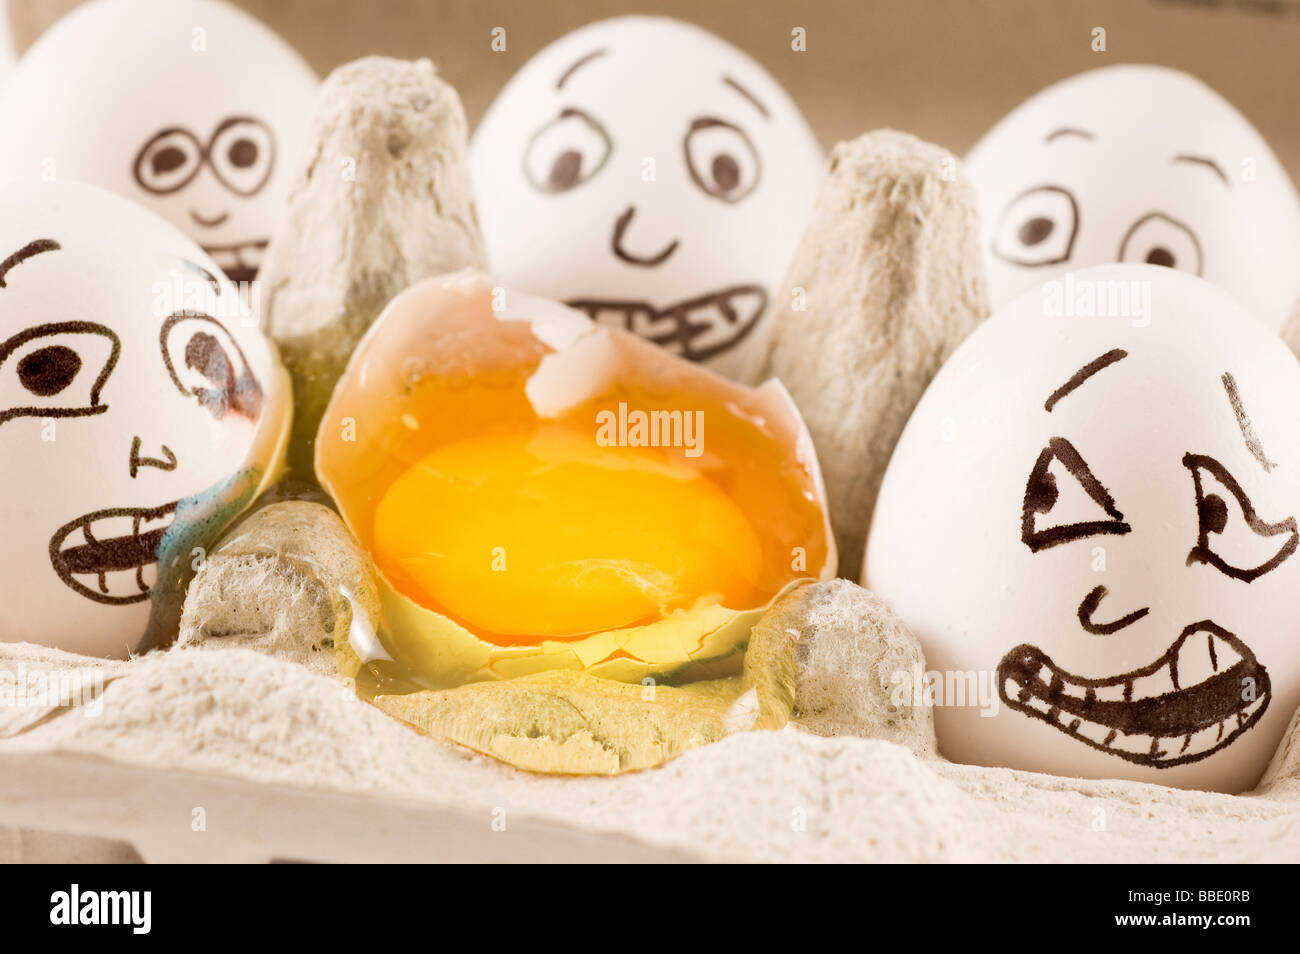 Eggs are scared as they see dead friend - Stock Image